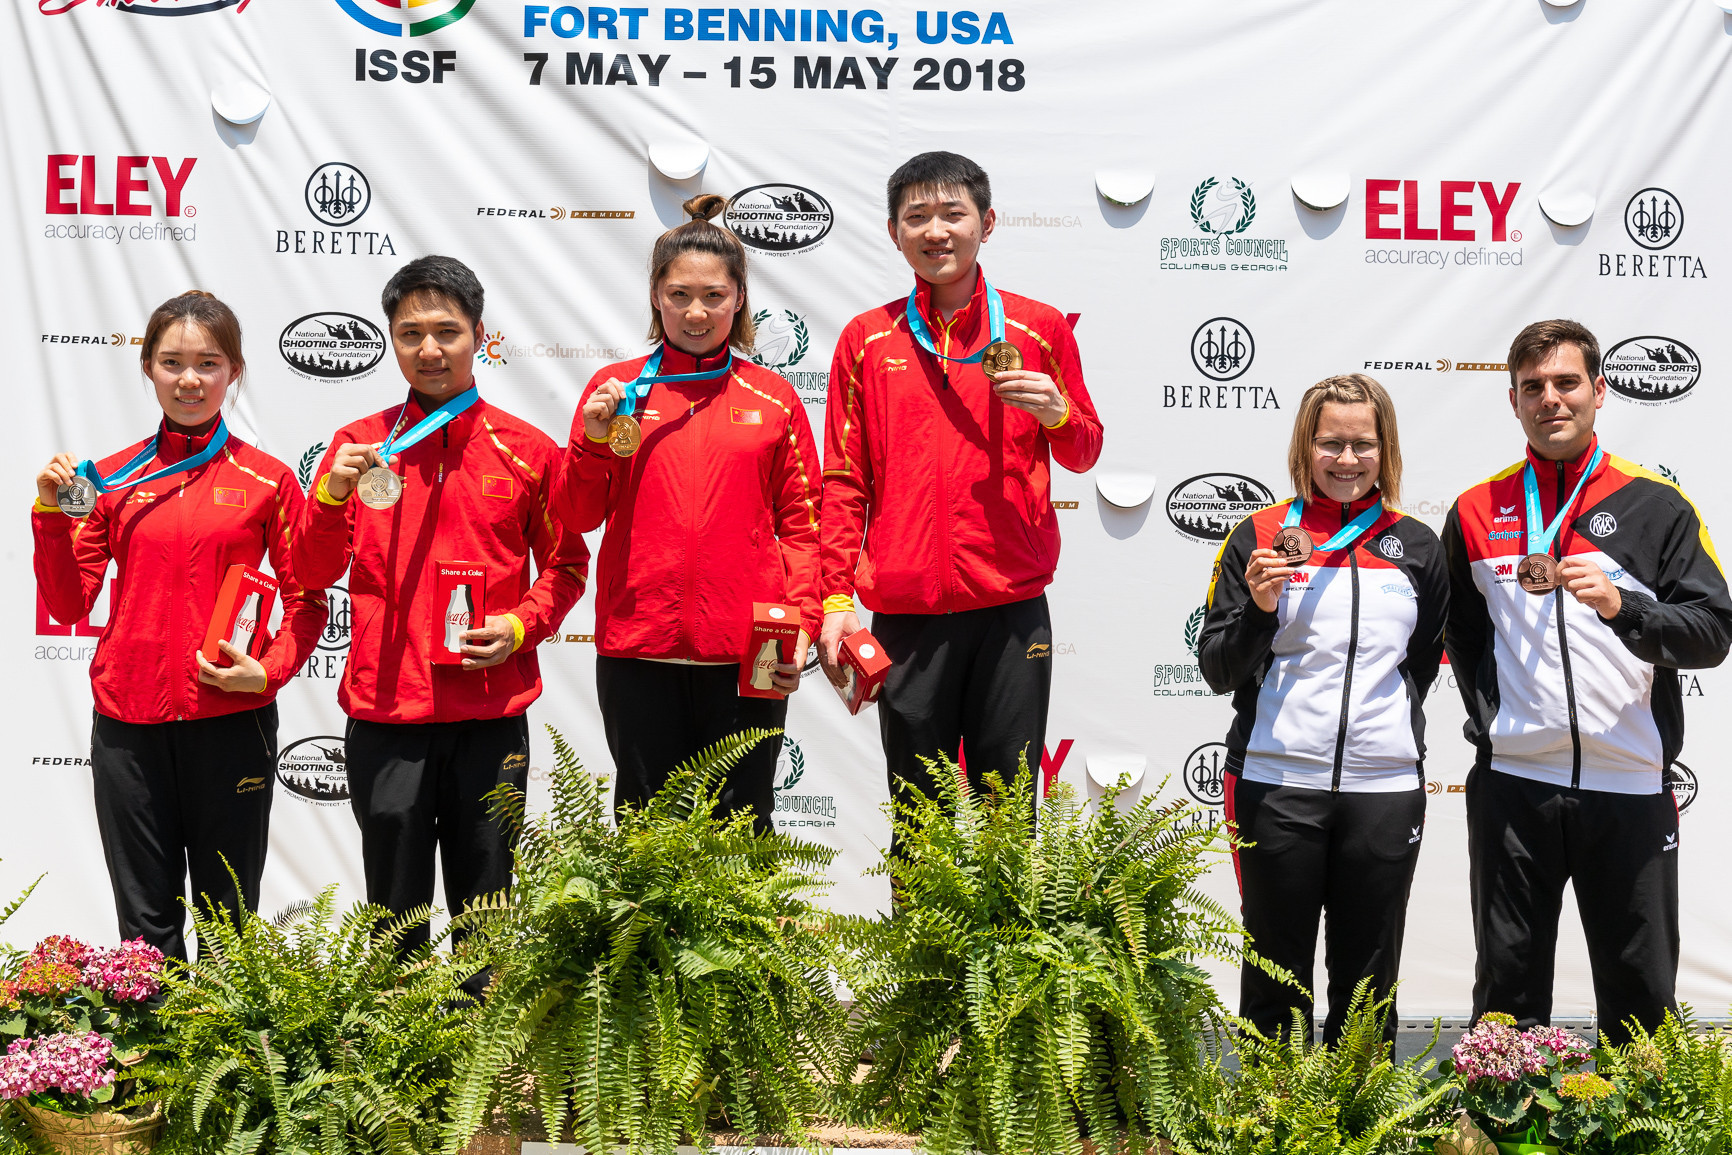 China top medal table at ISSF World Cup in Fort Benning after final day gold